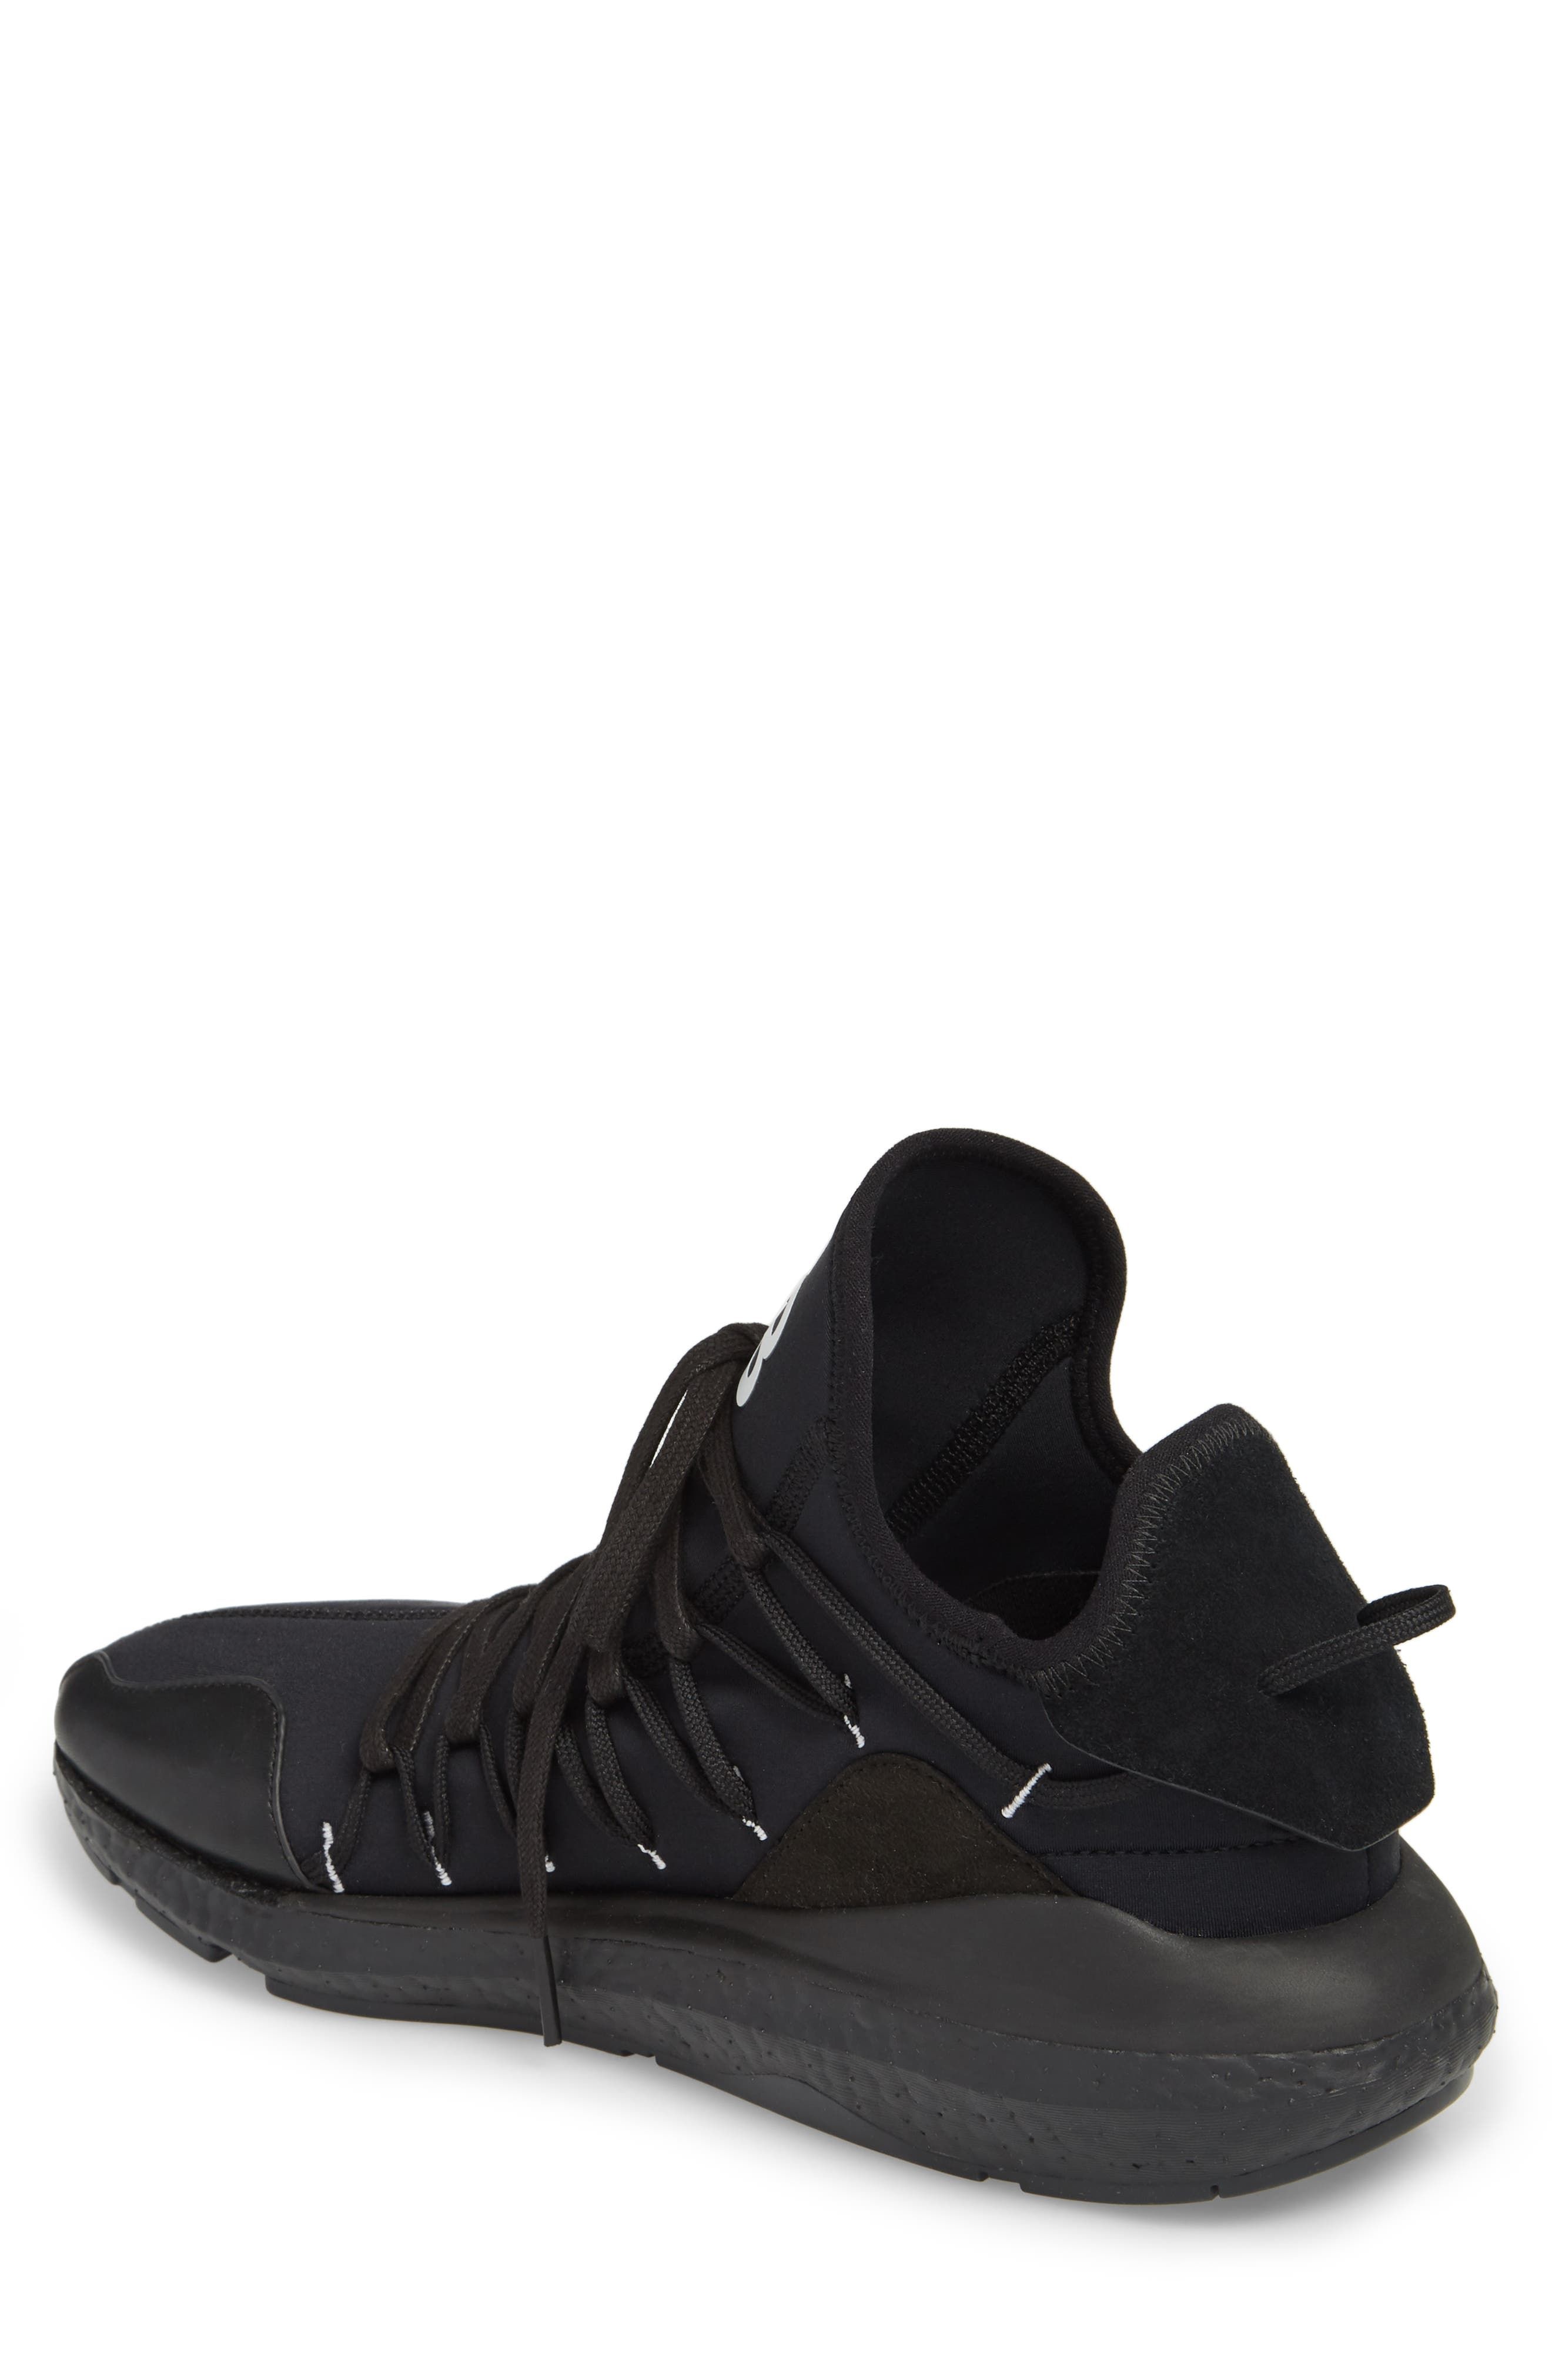 x adidas Kusari Sneaker,                             Alternate thumbnail 2, color,                             Black/Black